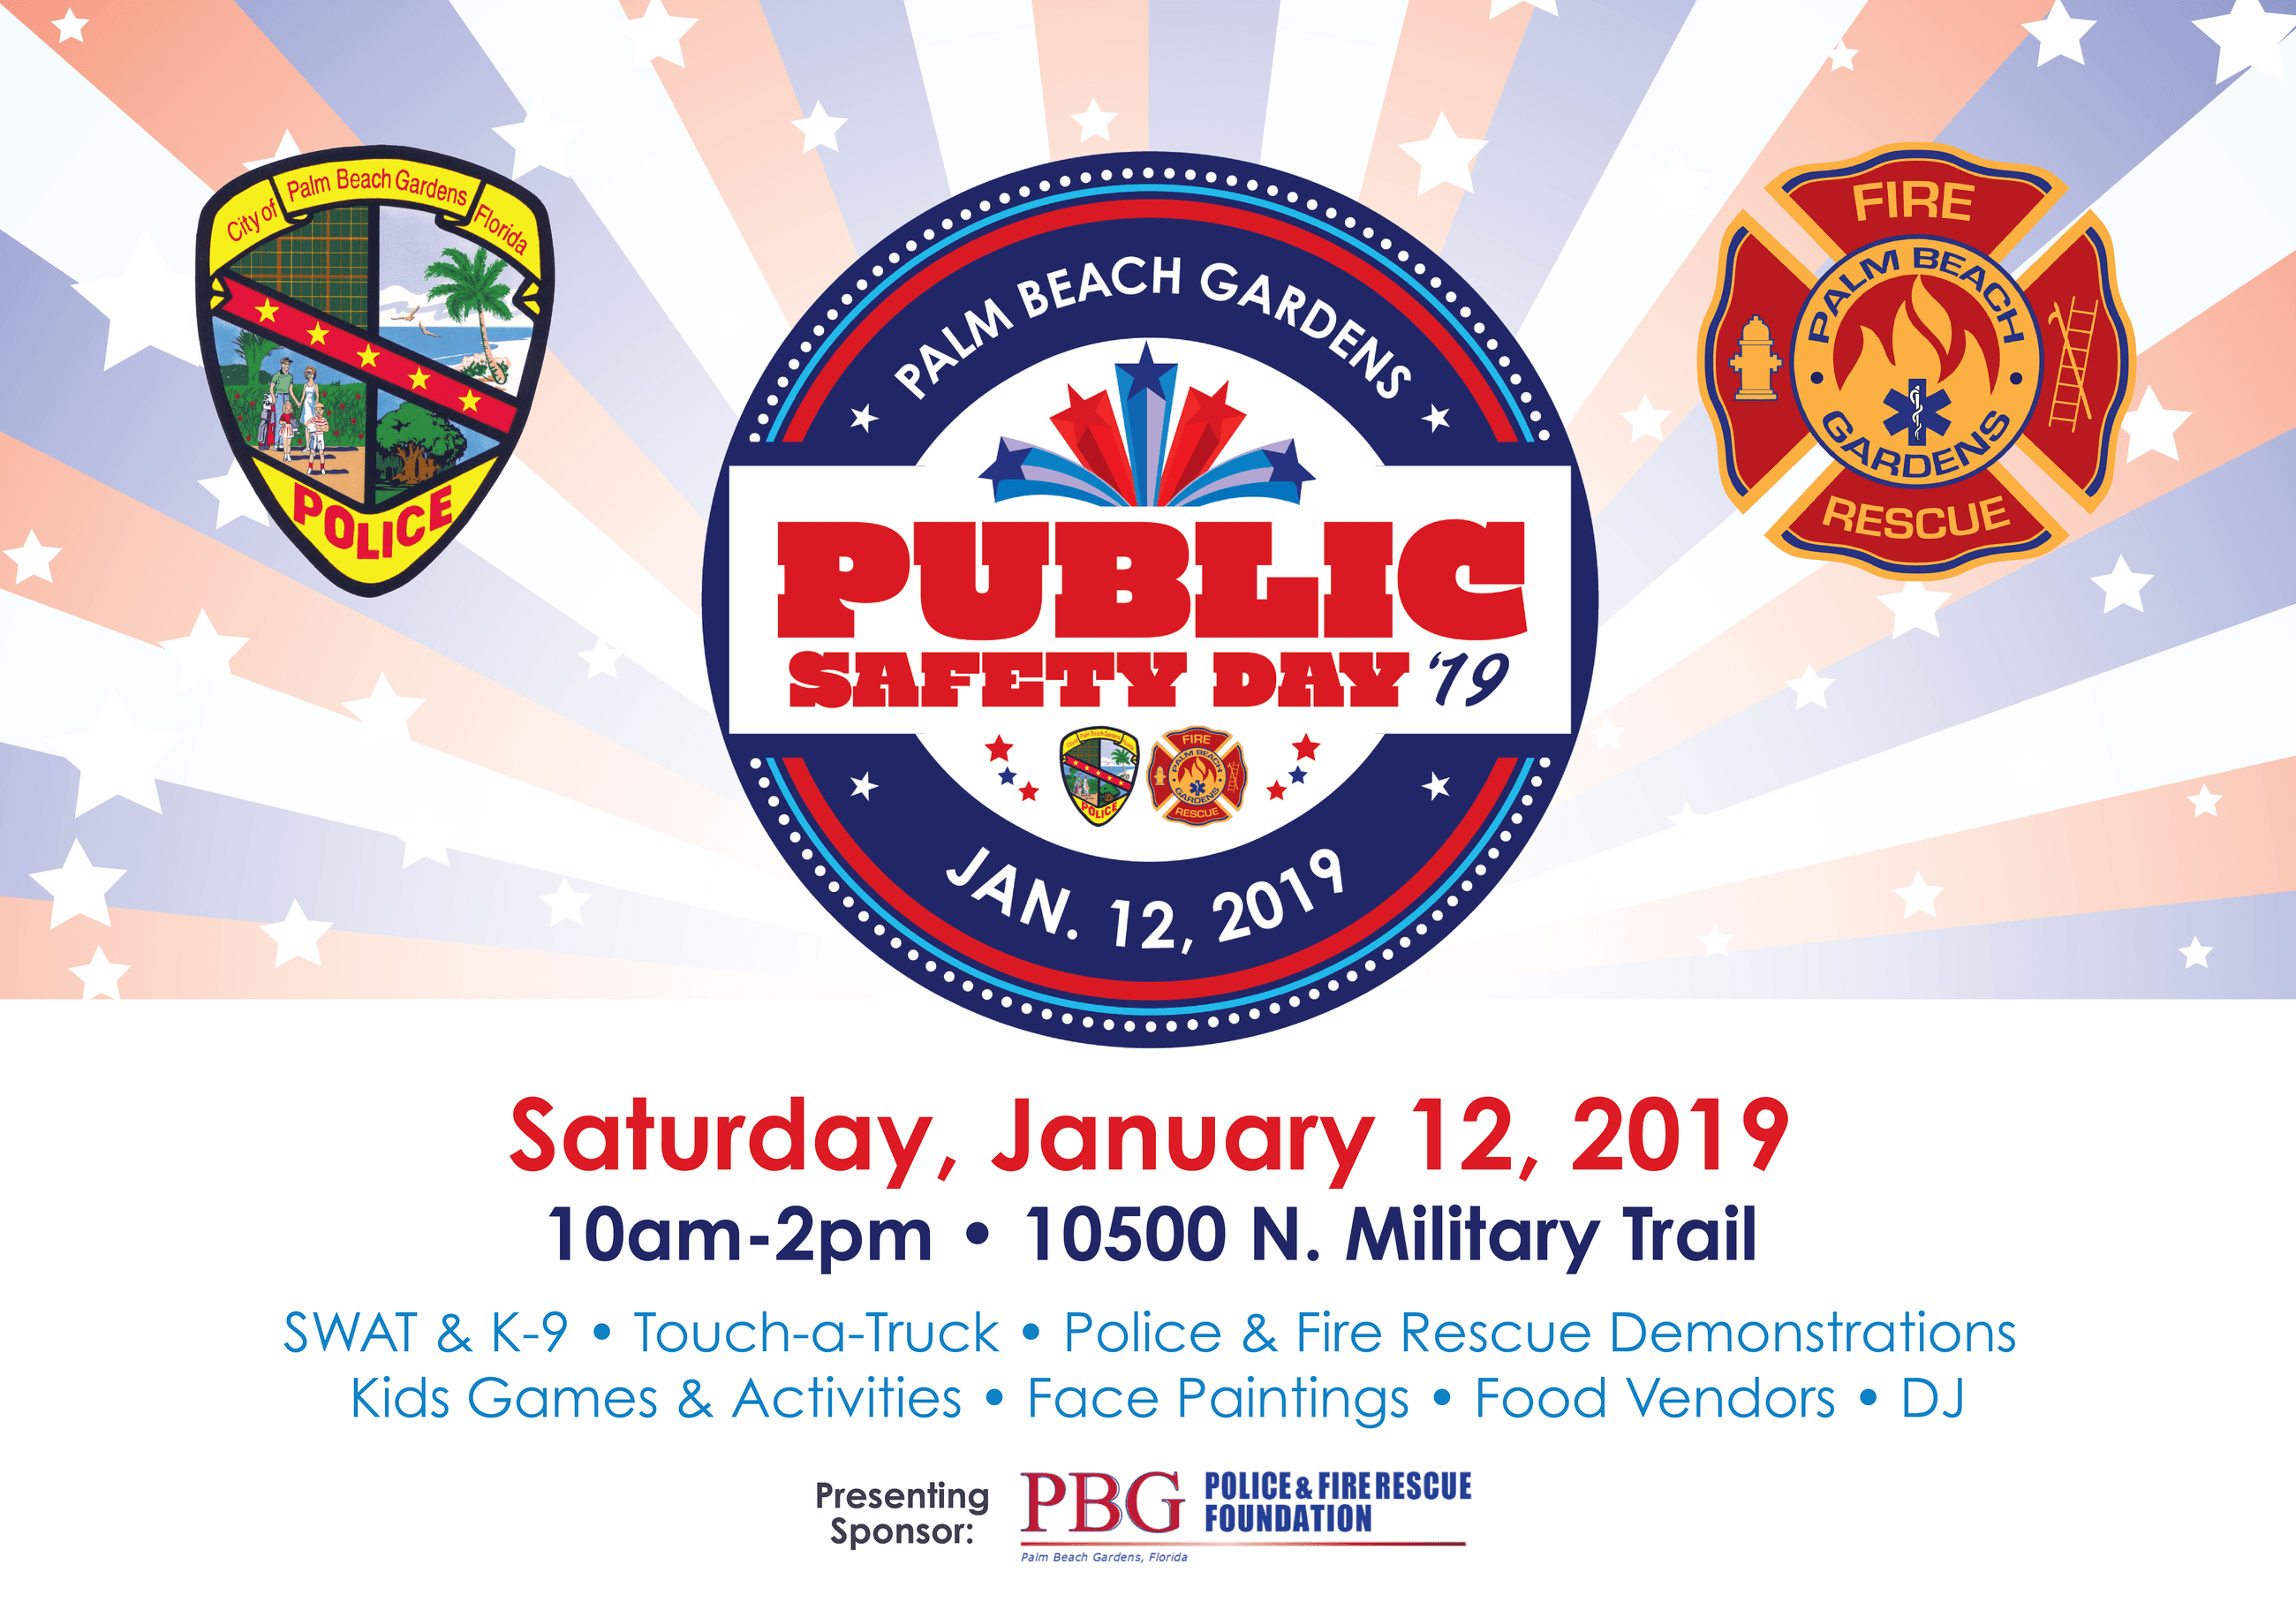 2019 Public Safety Day is on Saturday January 12, 2019 from 10am to 2pm at 10500 N. Military Trail